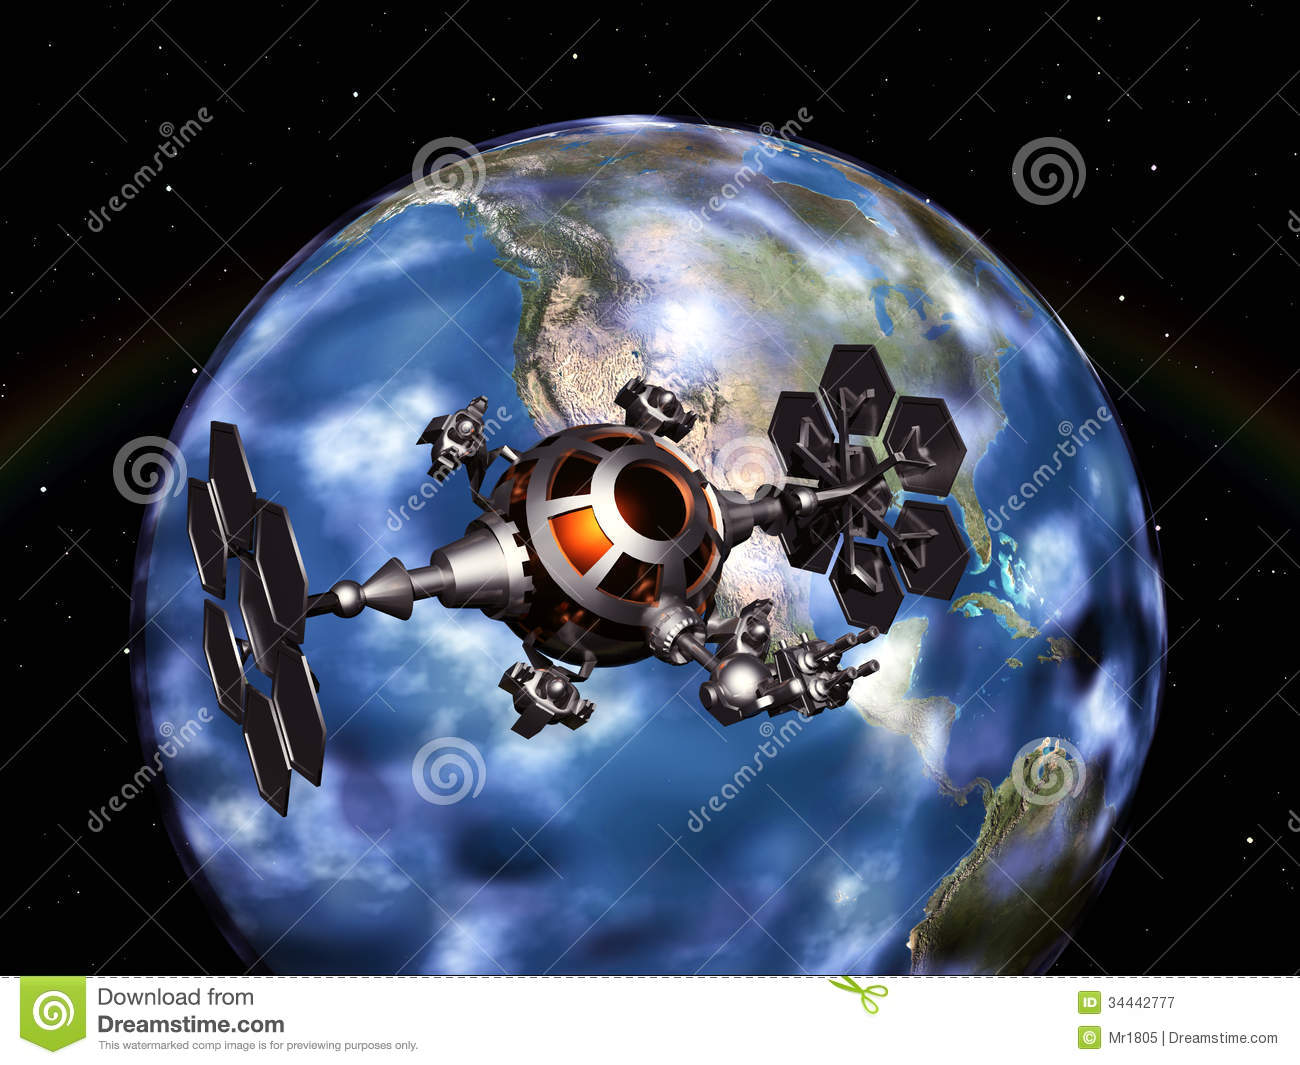 space probes for kids - 600×450